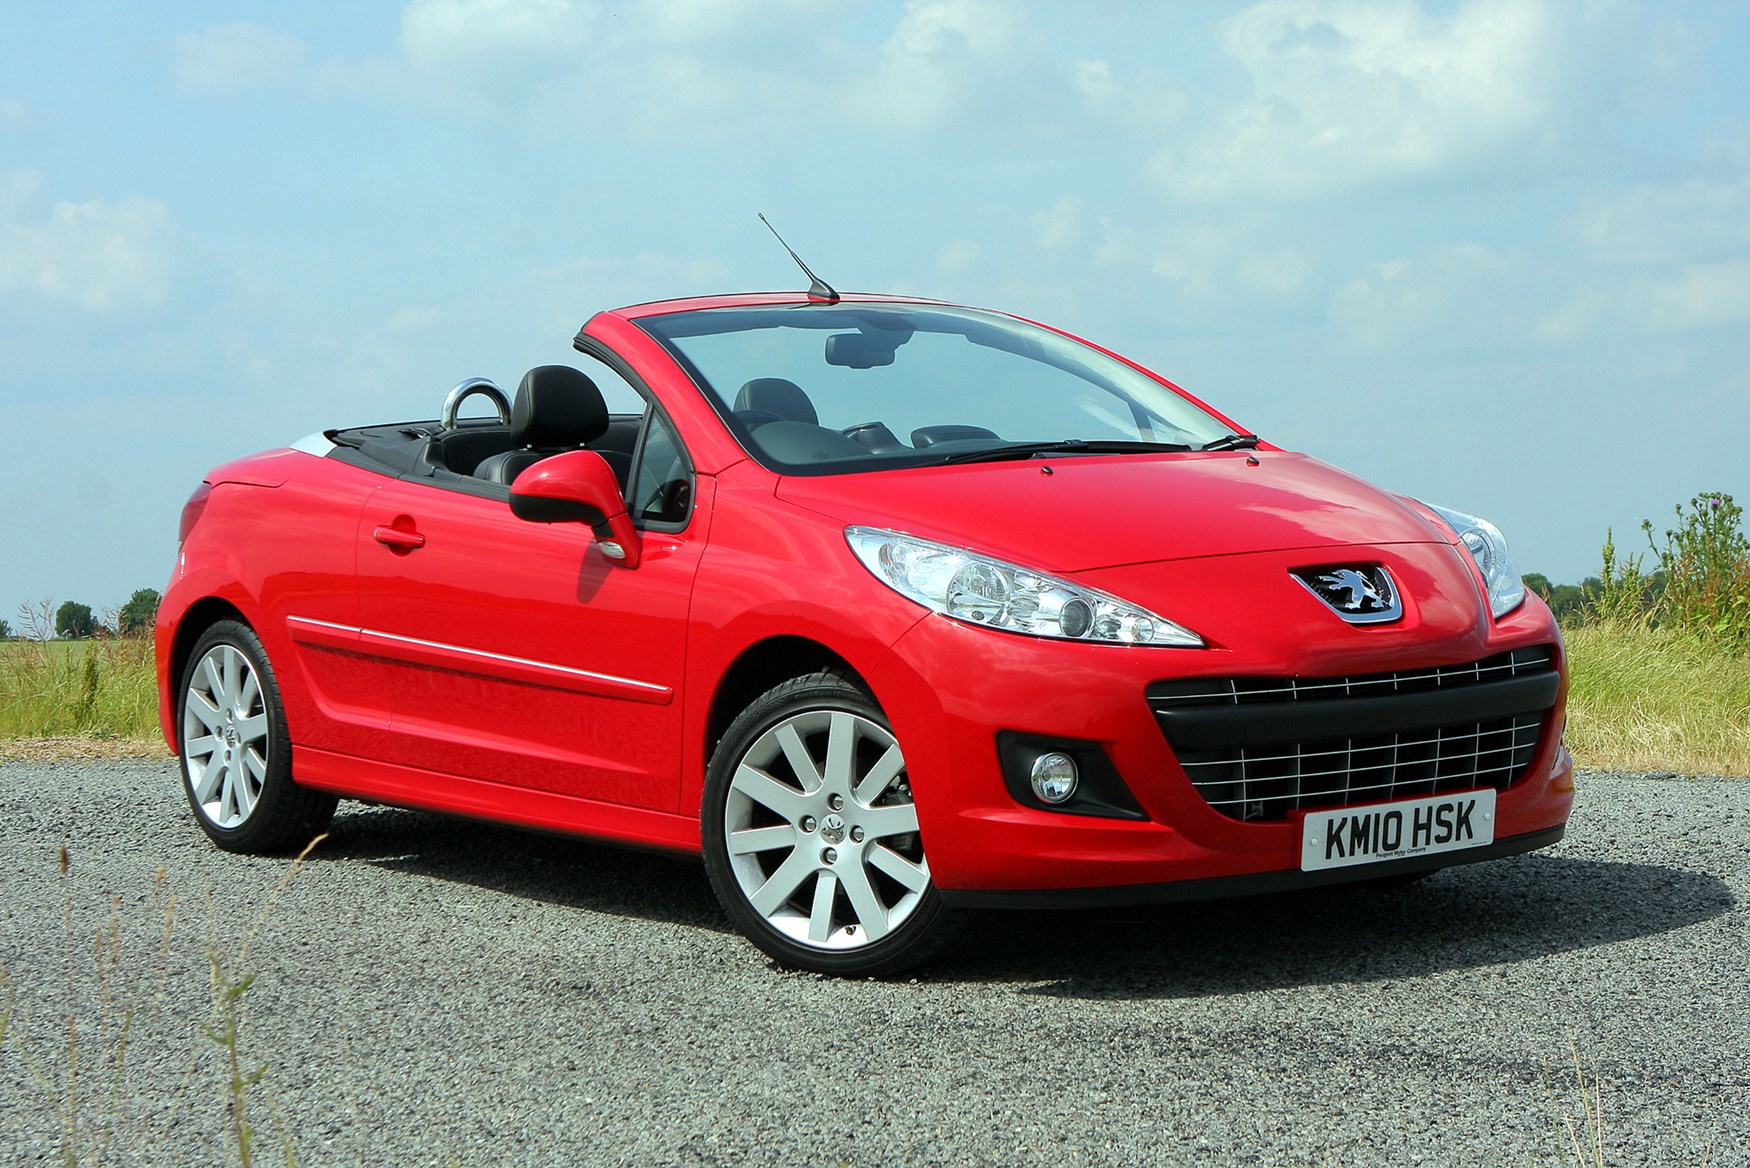 Used Peugeot 207 CC (2007 - 2014) Review